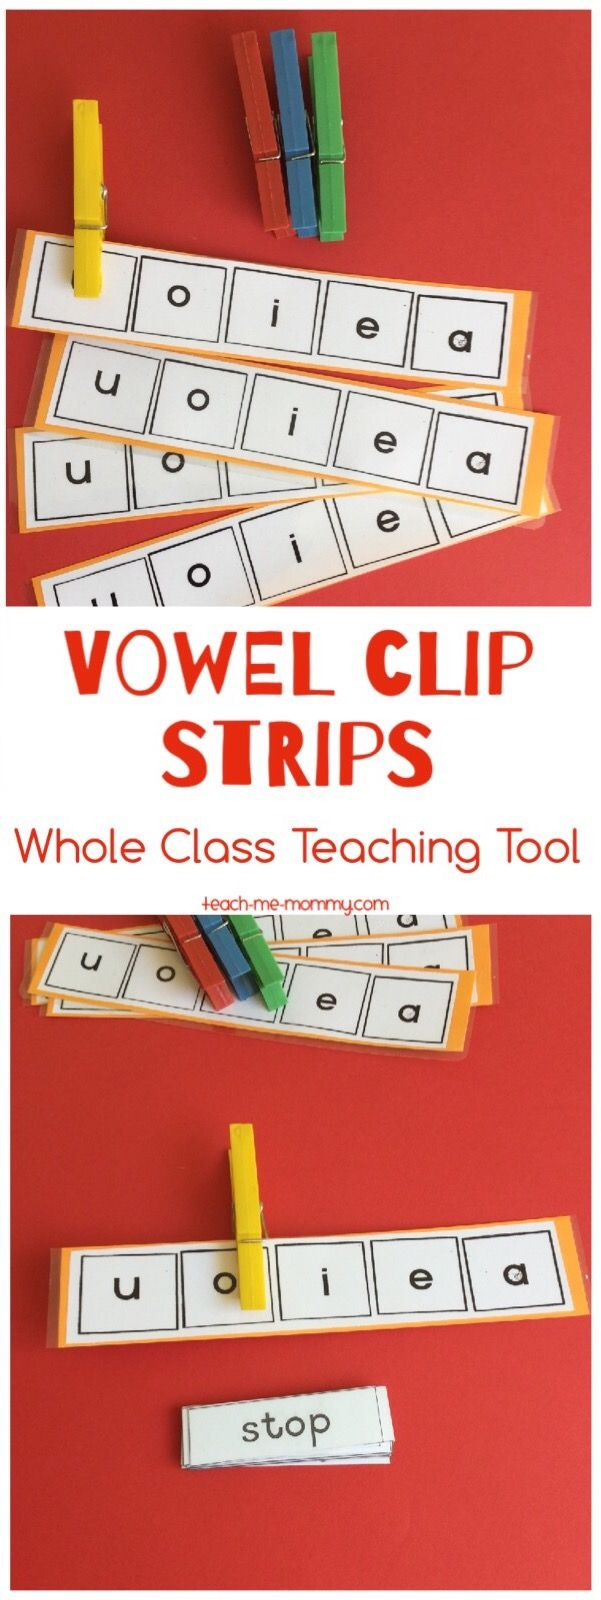 Vowel Clip Strips  - Simple tool to teach vowels!